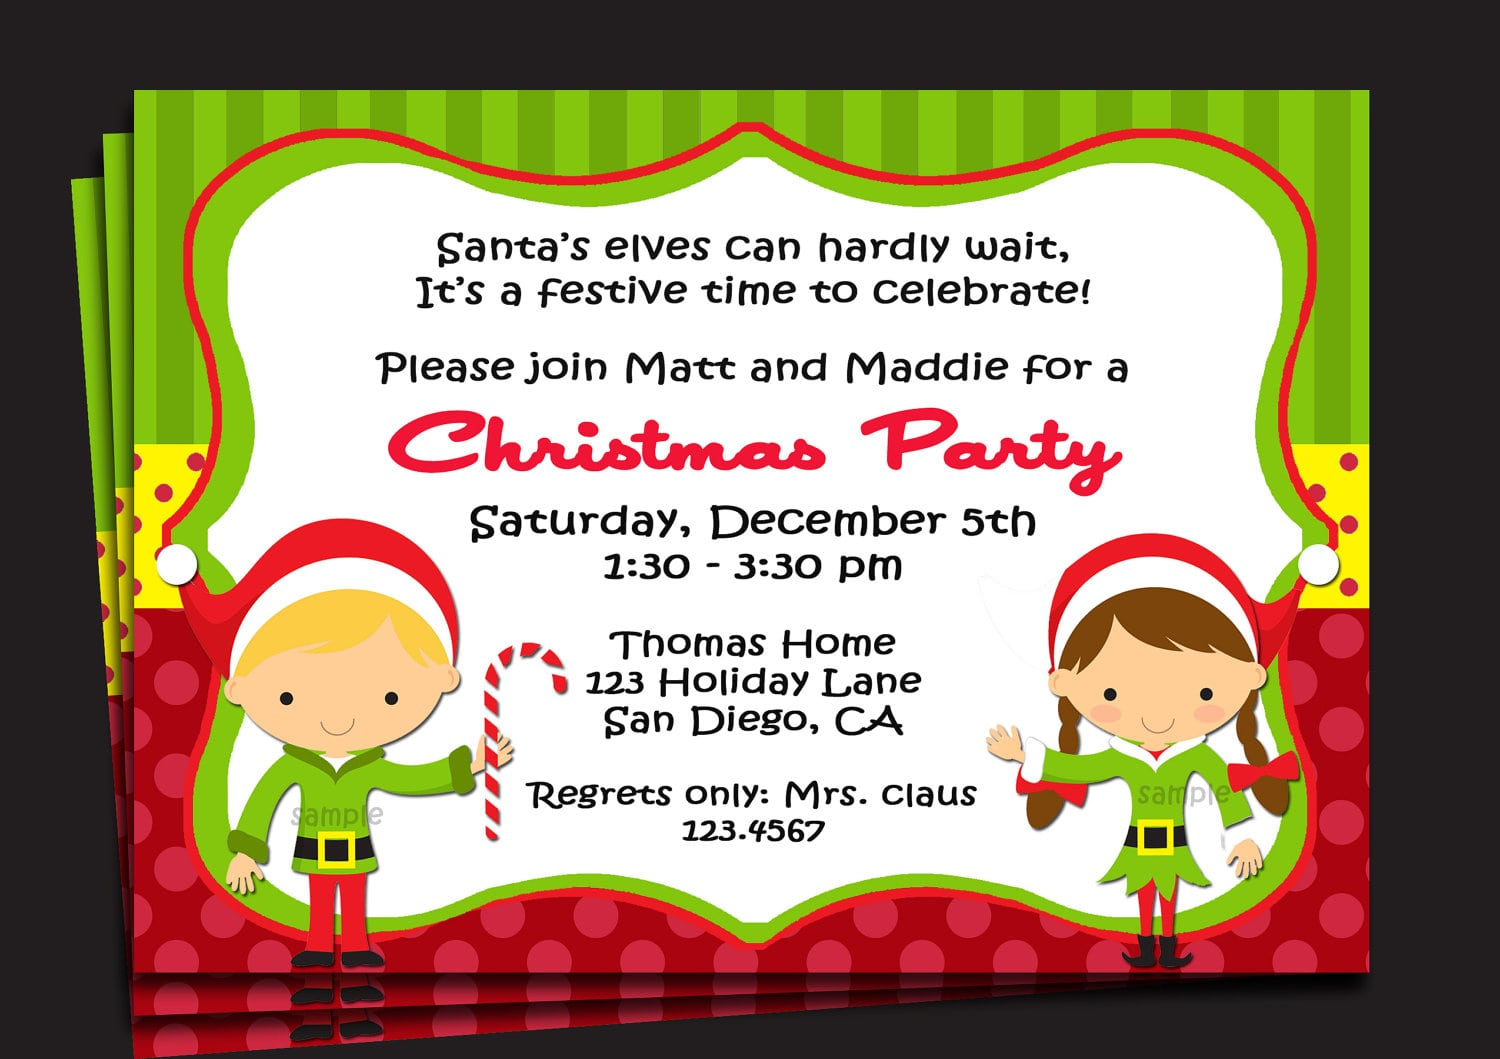 Free Kids Christian Christmas Clipart For Invitations